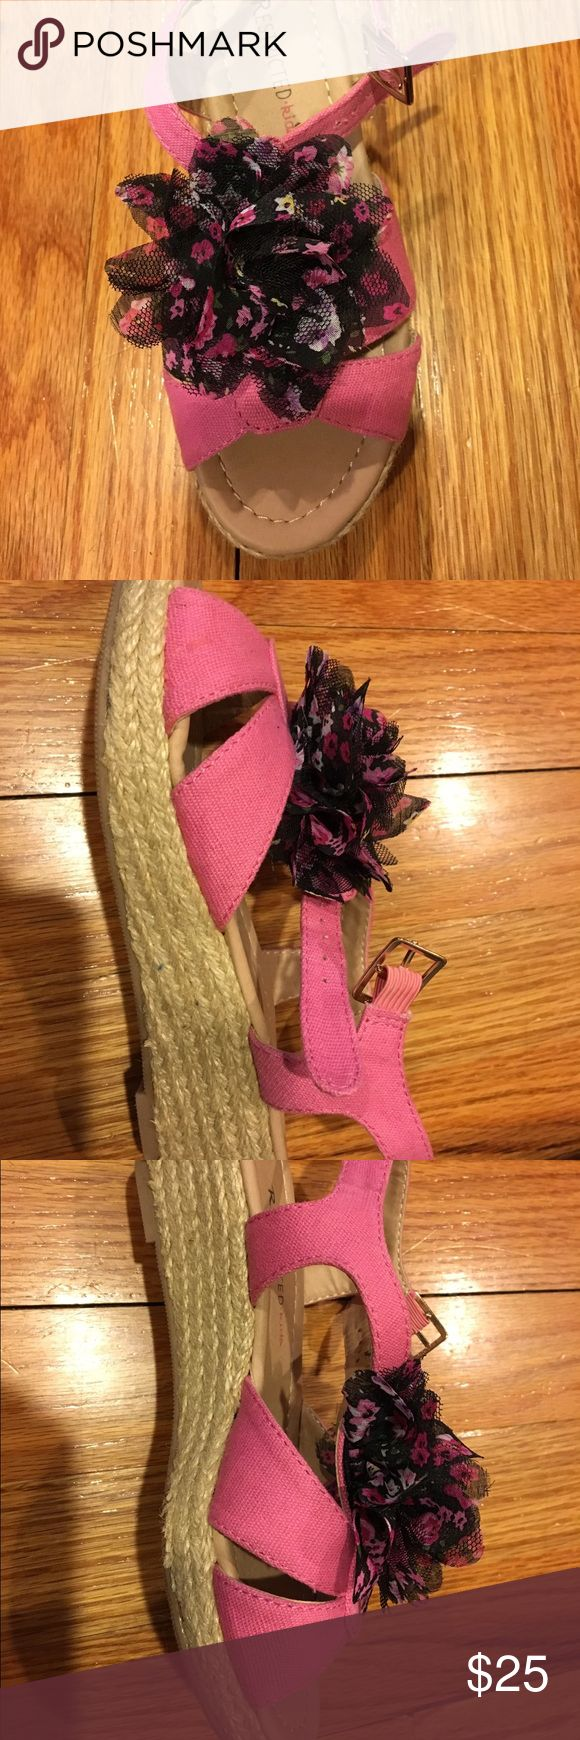 "Girls pink espadrilles Adorable and fun Girls pink espadrilles by ""Restricted kids"" brand Restricted Shoes Sandals & Flip Flops"